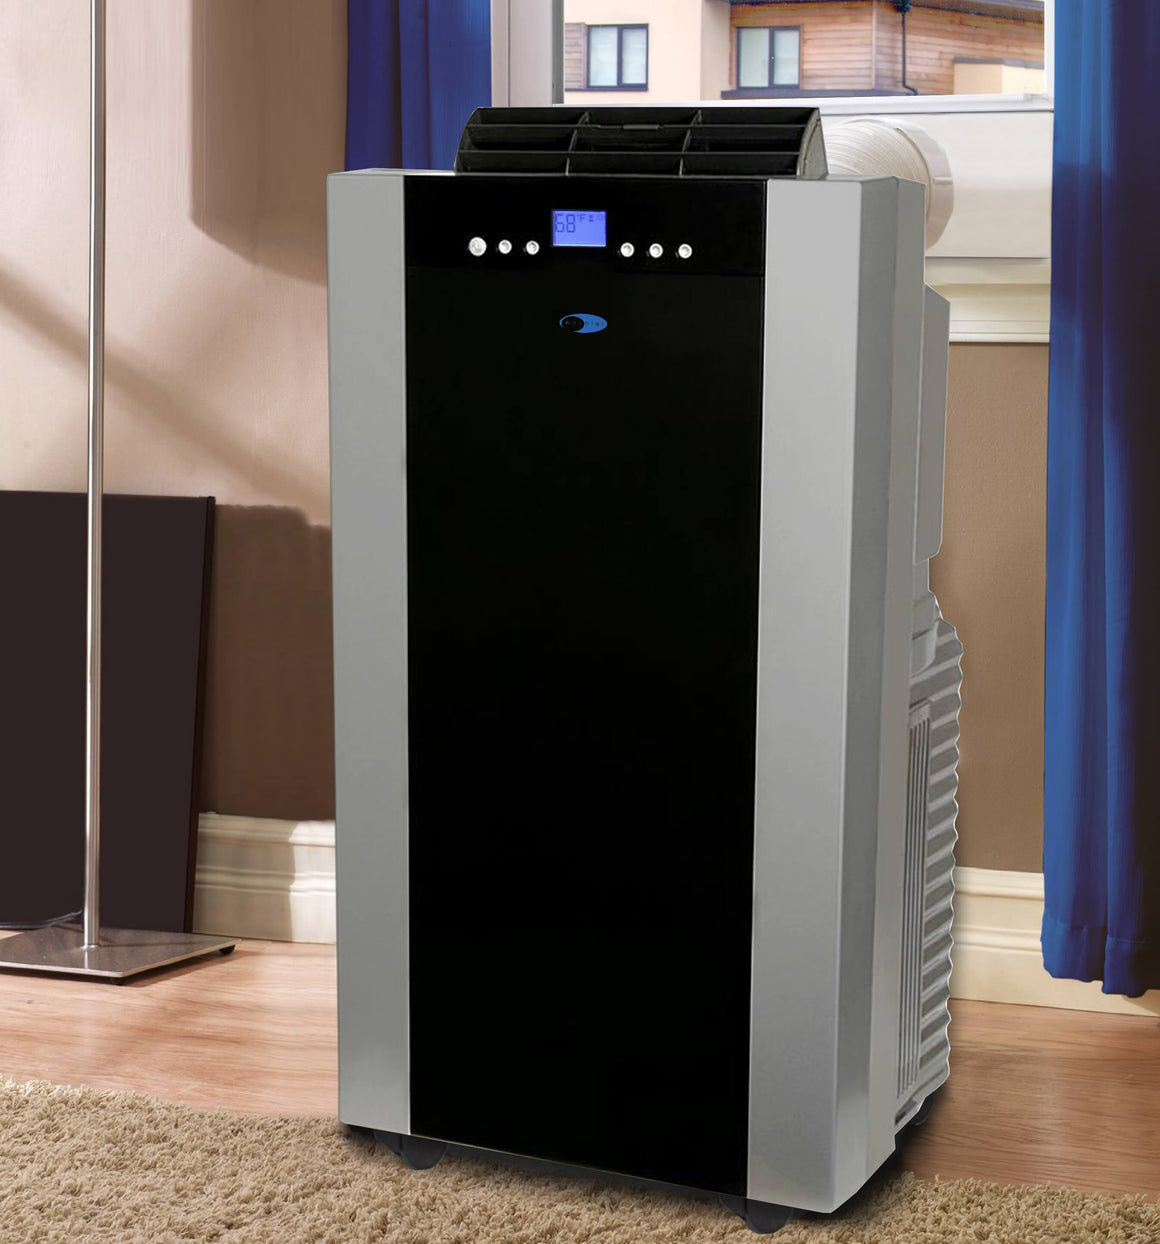 Whynter Eco-friendly 14000 BTU Dual Hose Portable Air Conditioner with Heater - ARC-14SH